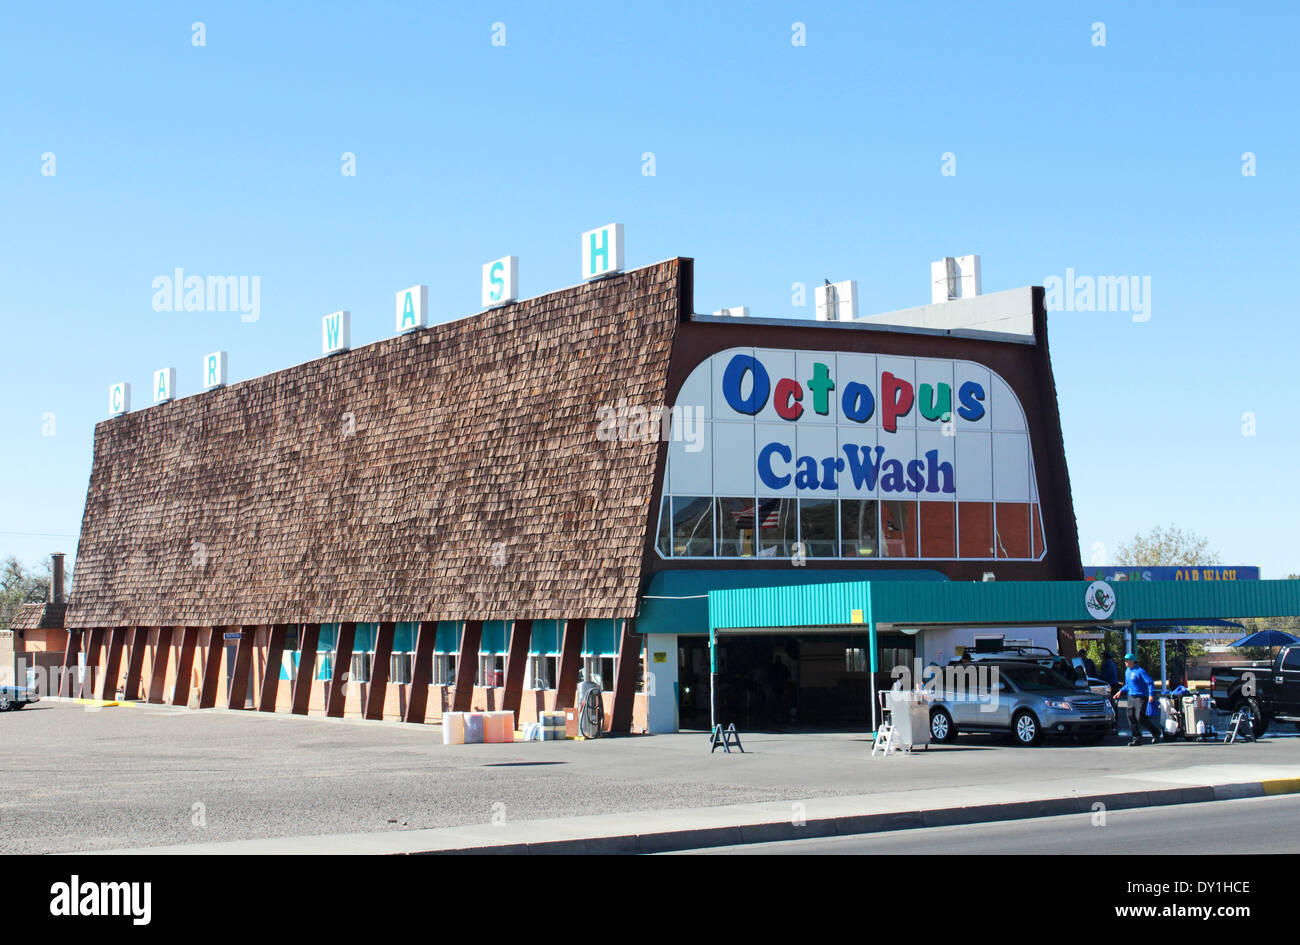 breaking bad tv location a1a carwash octopus car wash albuquerque stock photo royalty free. Black Bedroom Furniture Sets. Home Design Ideas